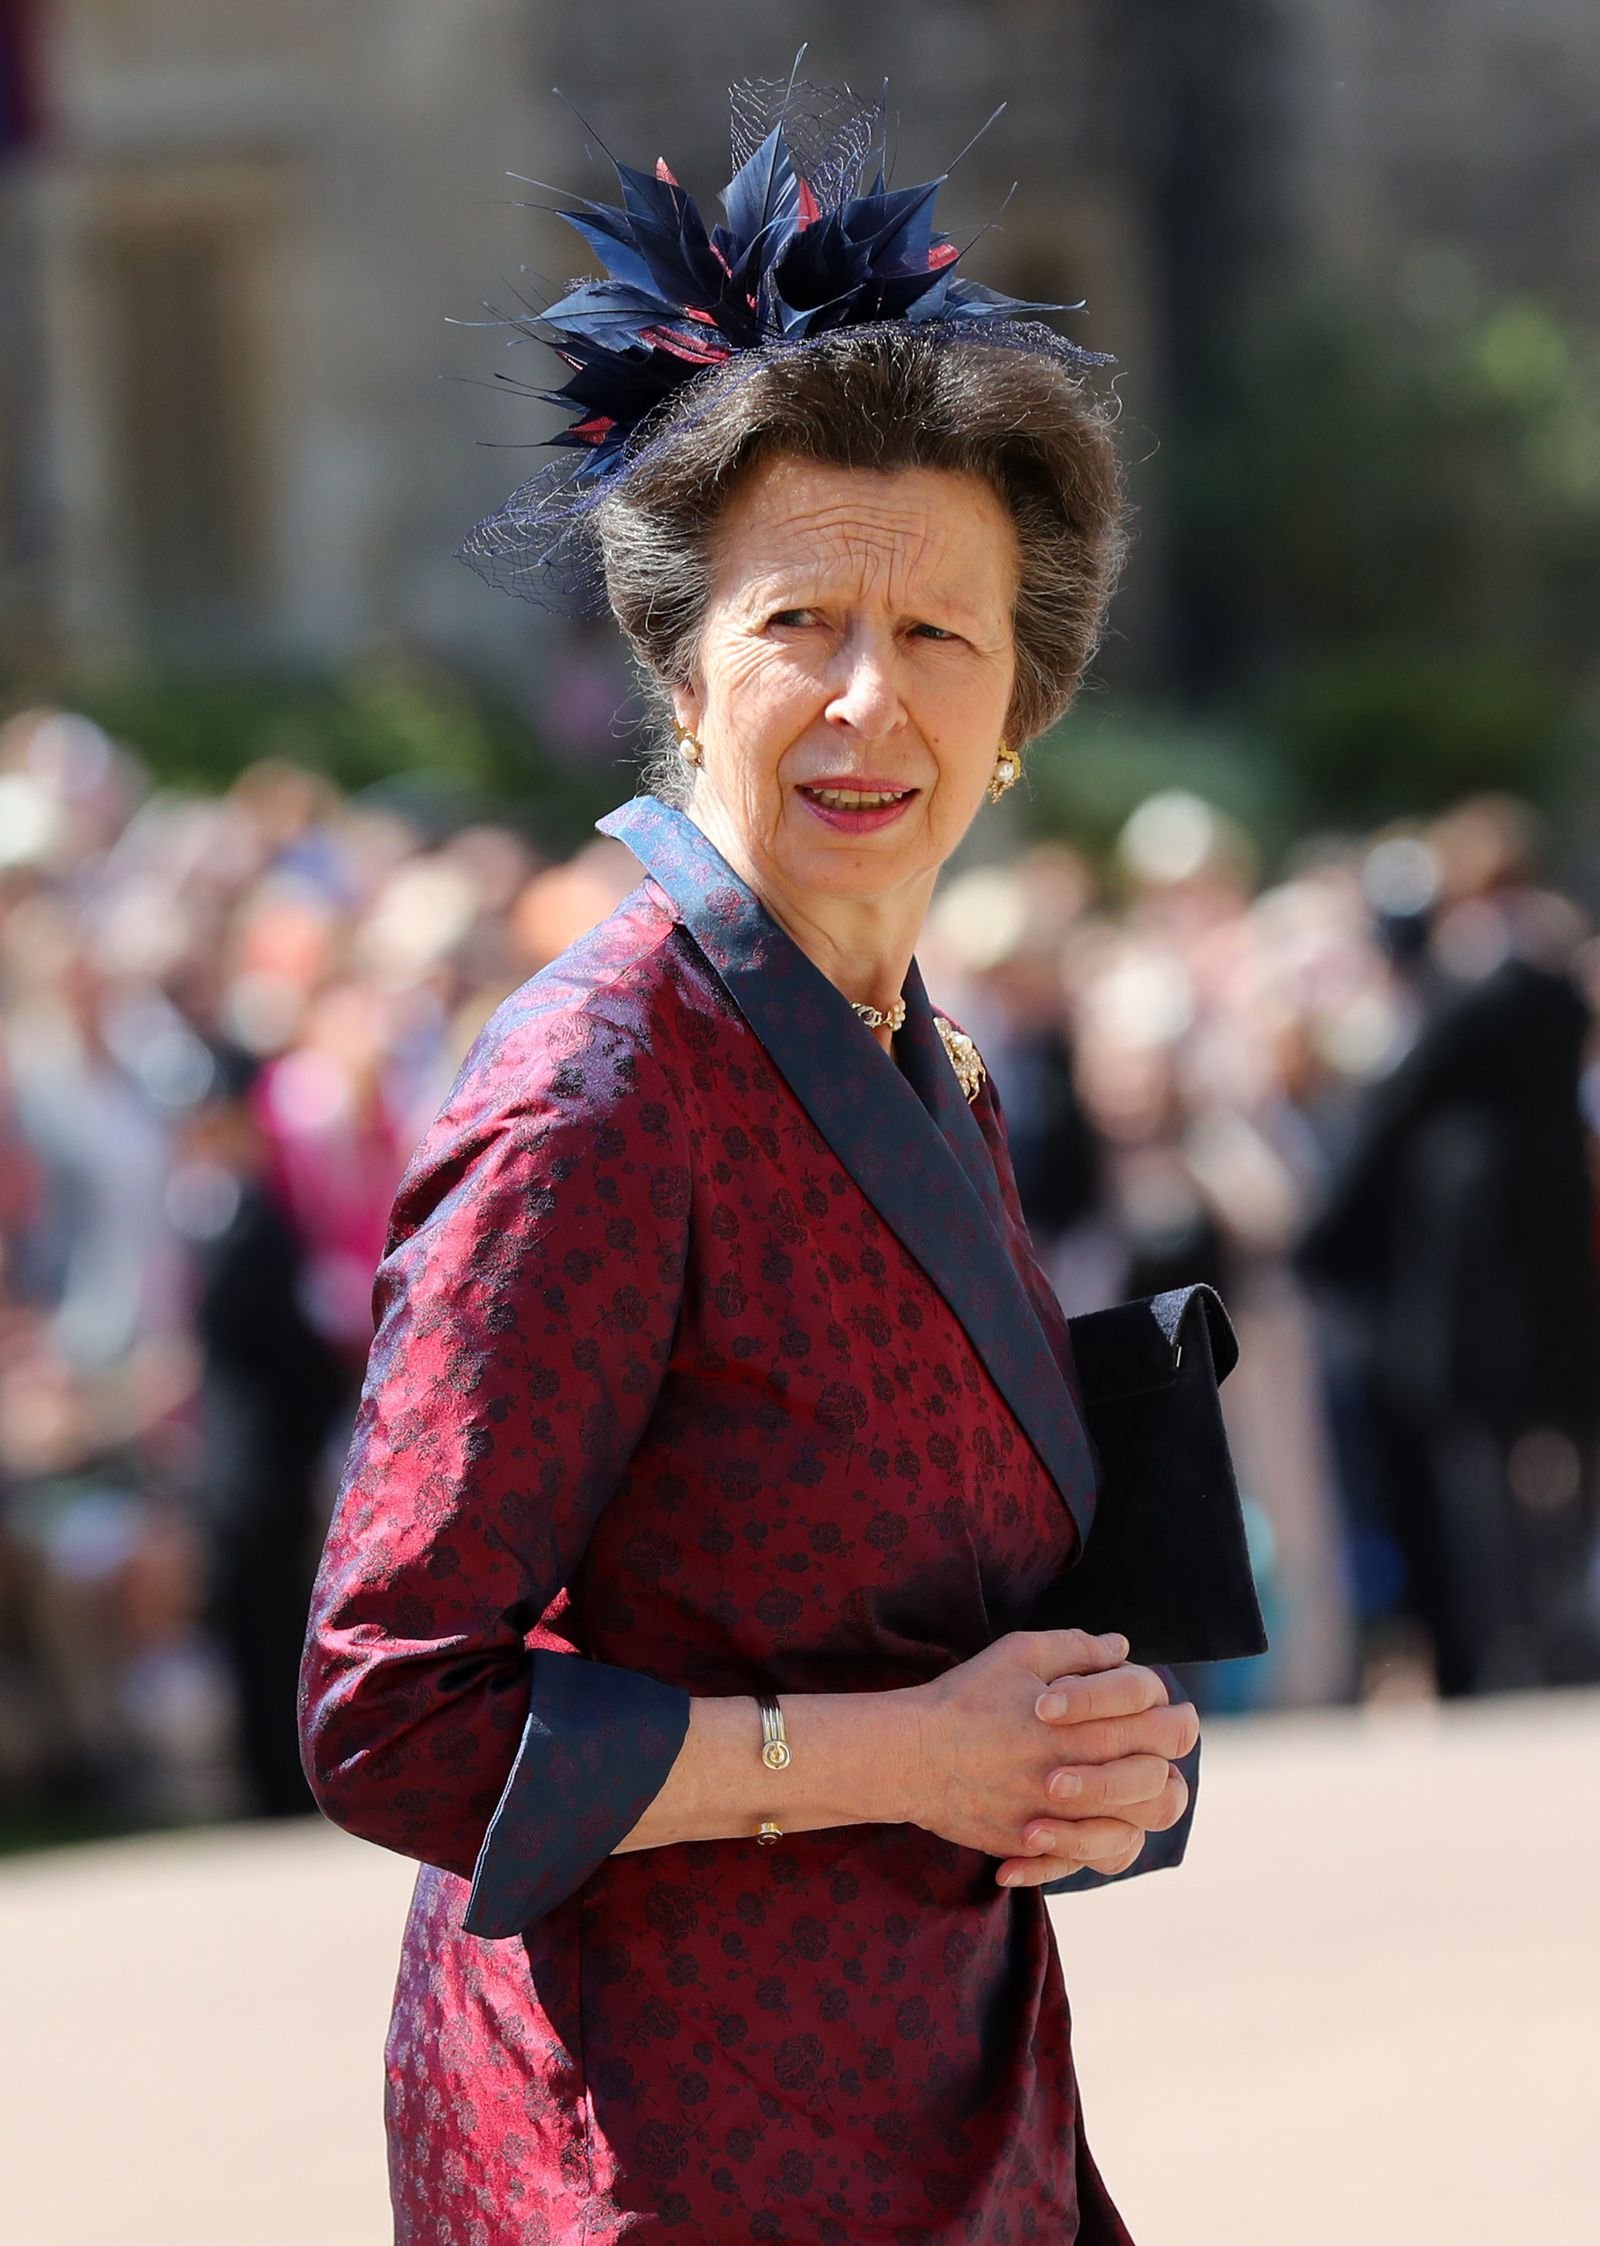 The wedding of Anne, Princess Royal to Mark Phillips